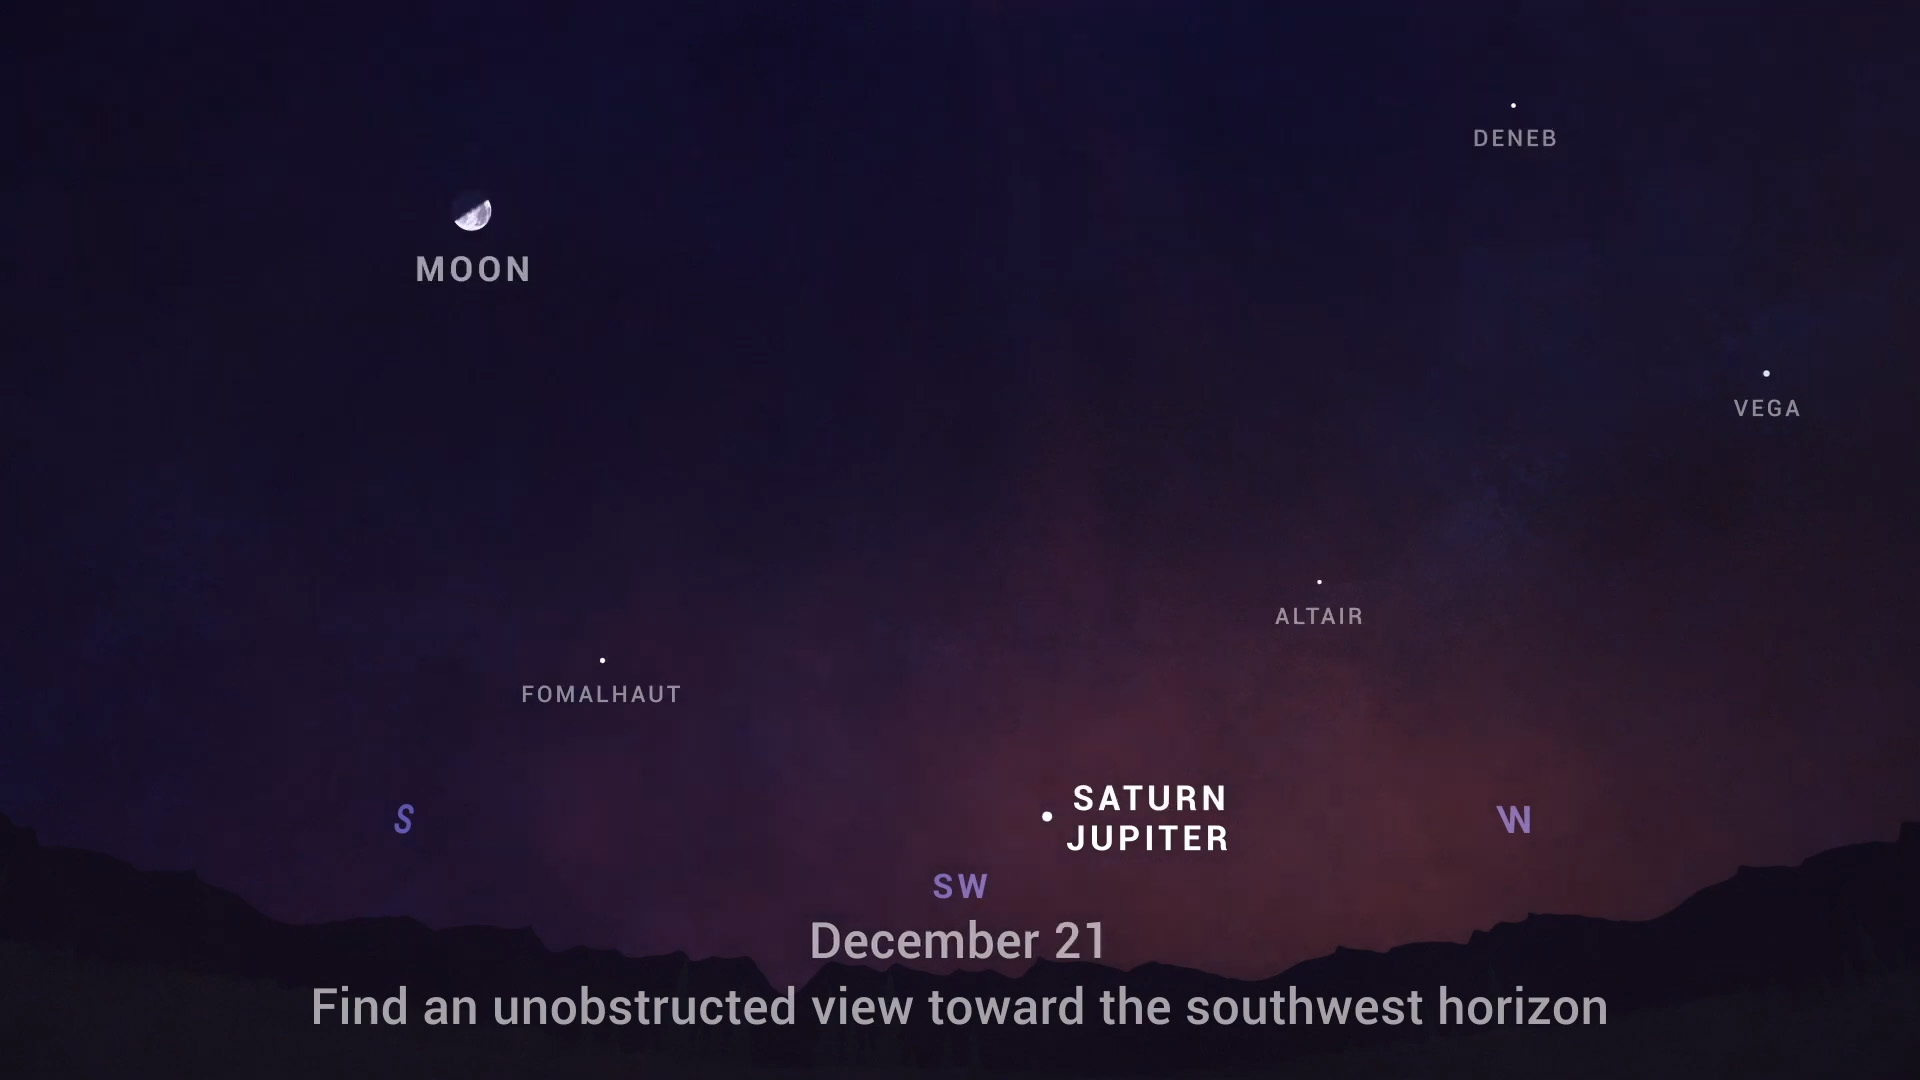 a star map showing the location along the southwestern horizon of the moon, deneb, fomalhaut, saturn and jupiter, altair, vega, and deneb